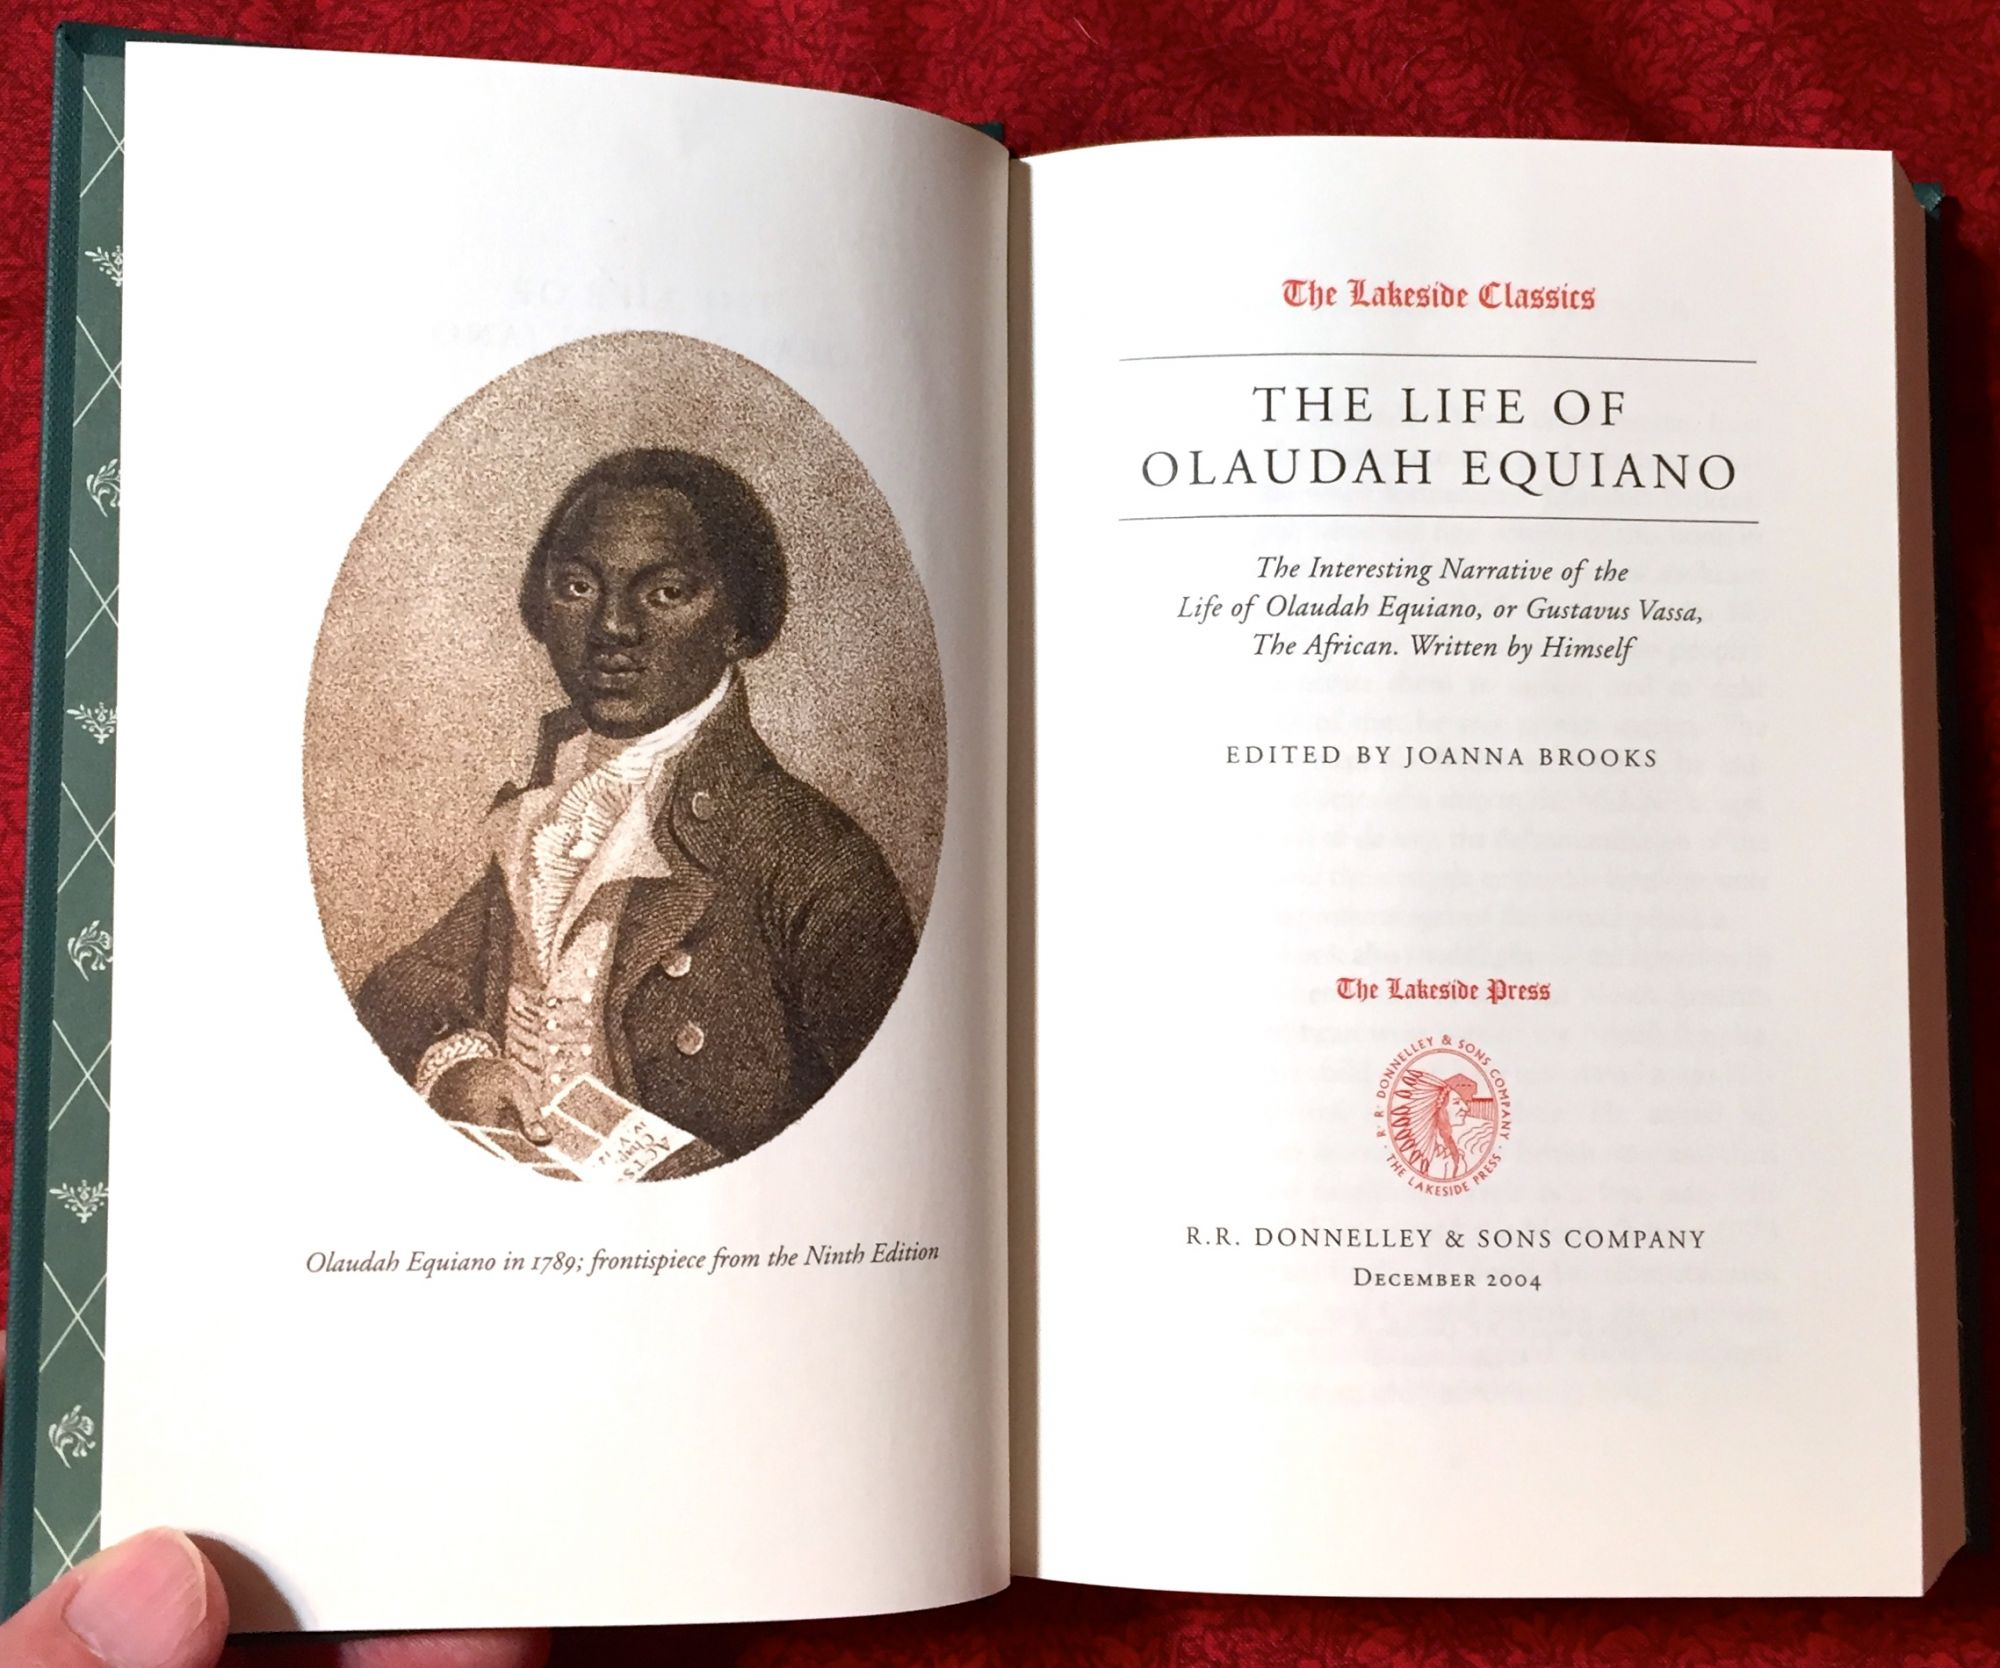 Interesting Narrative of the Life of Olaudah Equiano - Chicago 2004